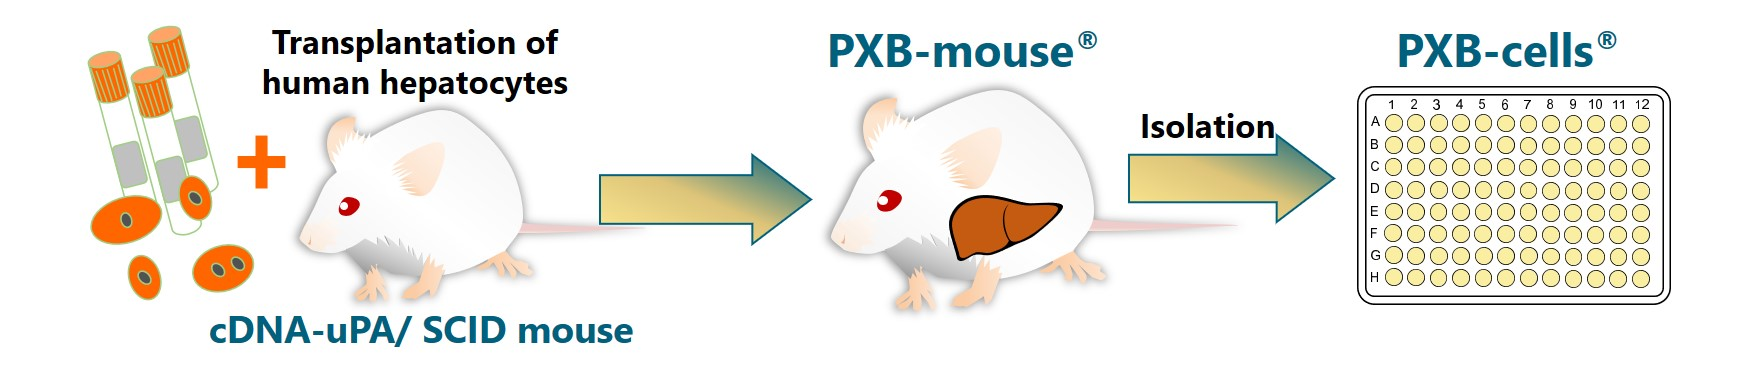 Non-alcoholic fatty liver like properties of PXB-cells_KMT website